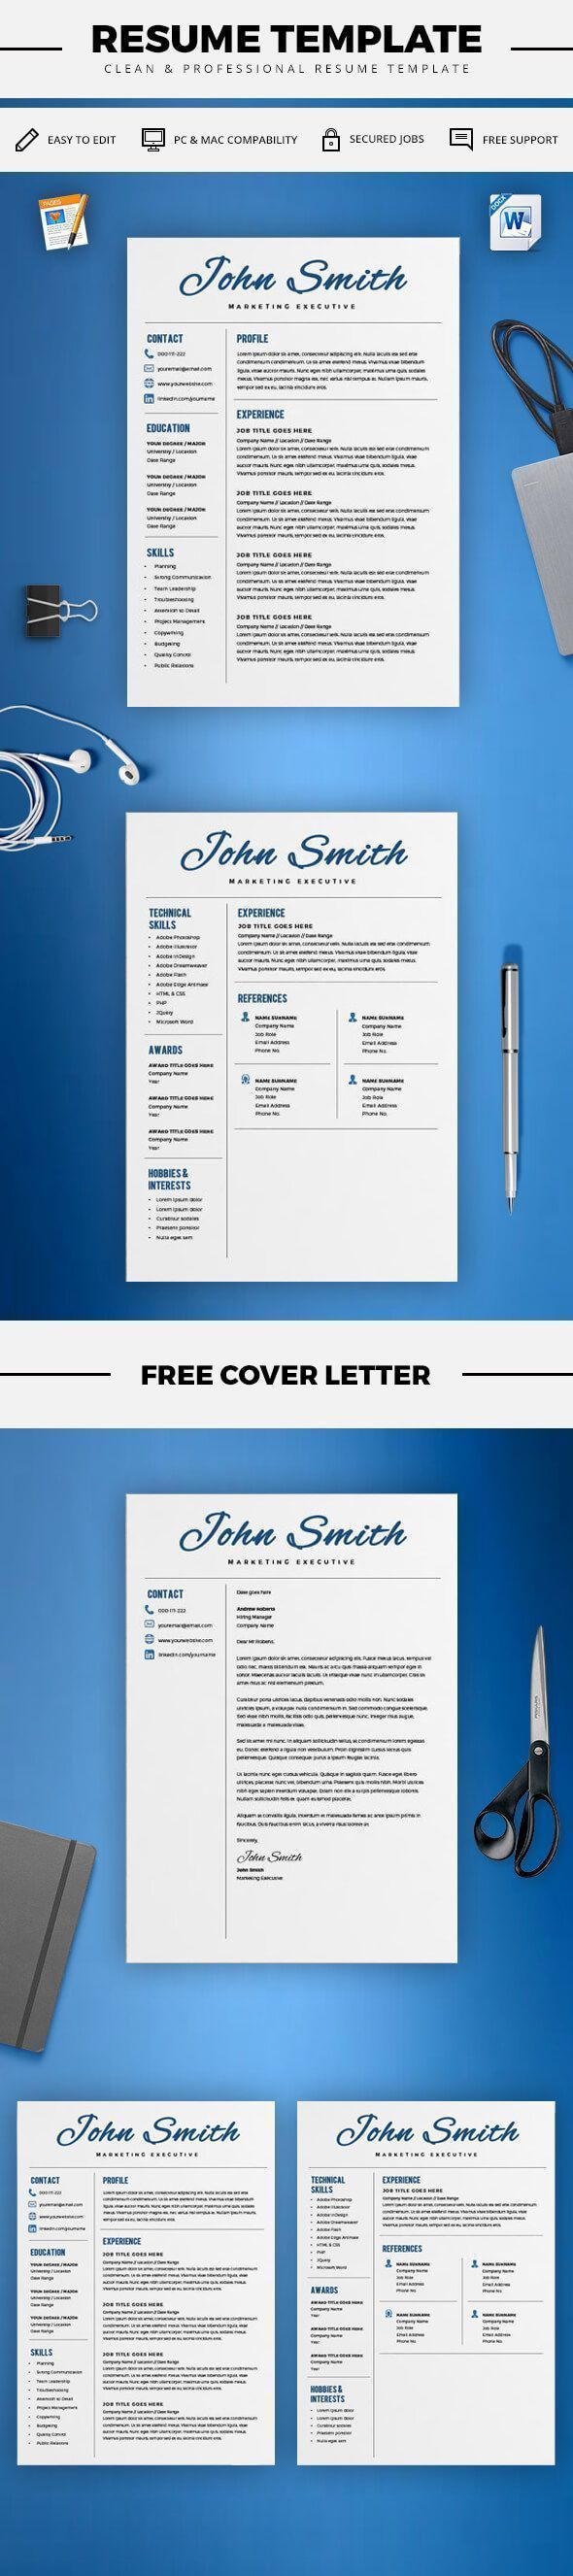 receptionist sample resume%0A Best     Best resume ideas on Pinterest   Best resume template  My resume  builder and Words for resume